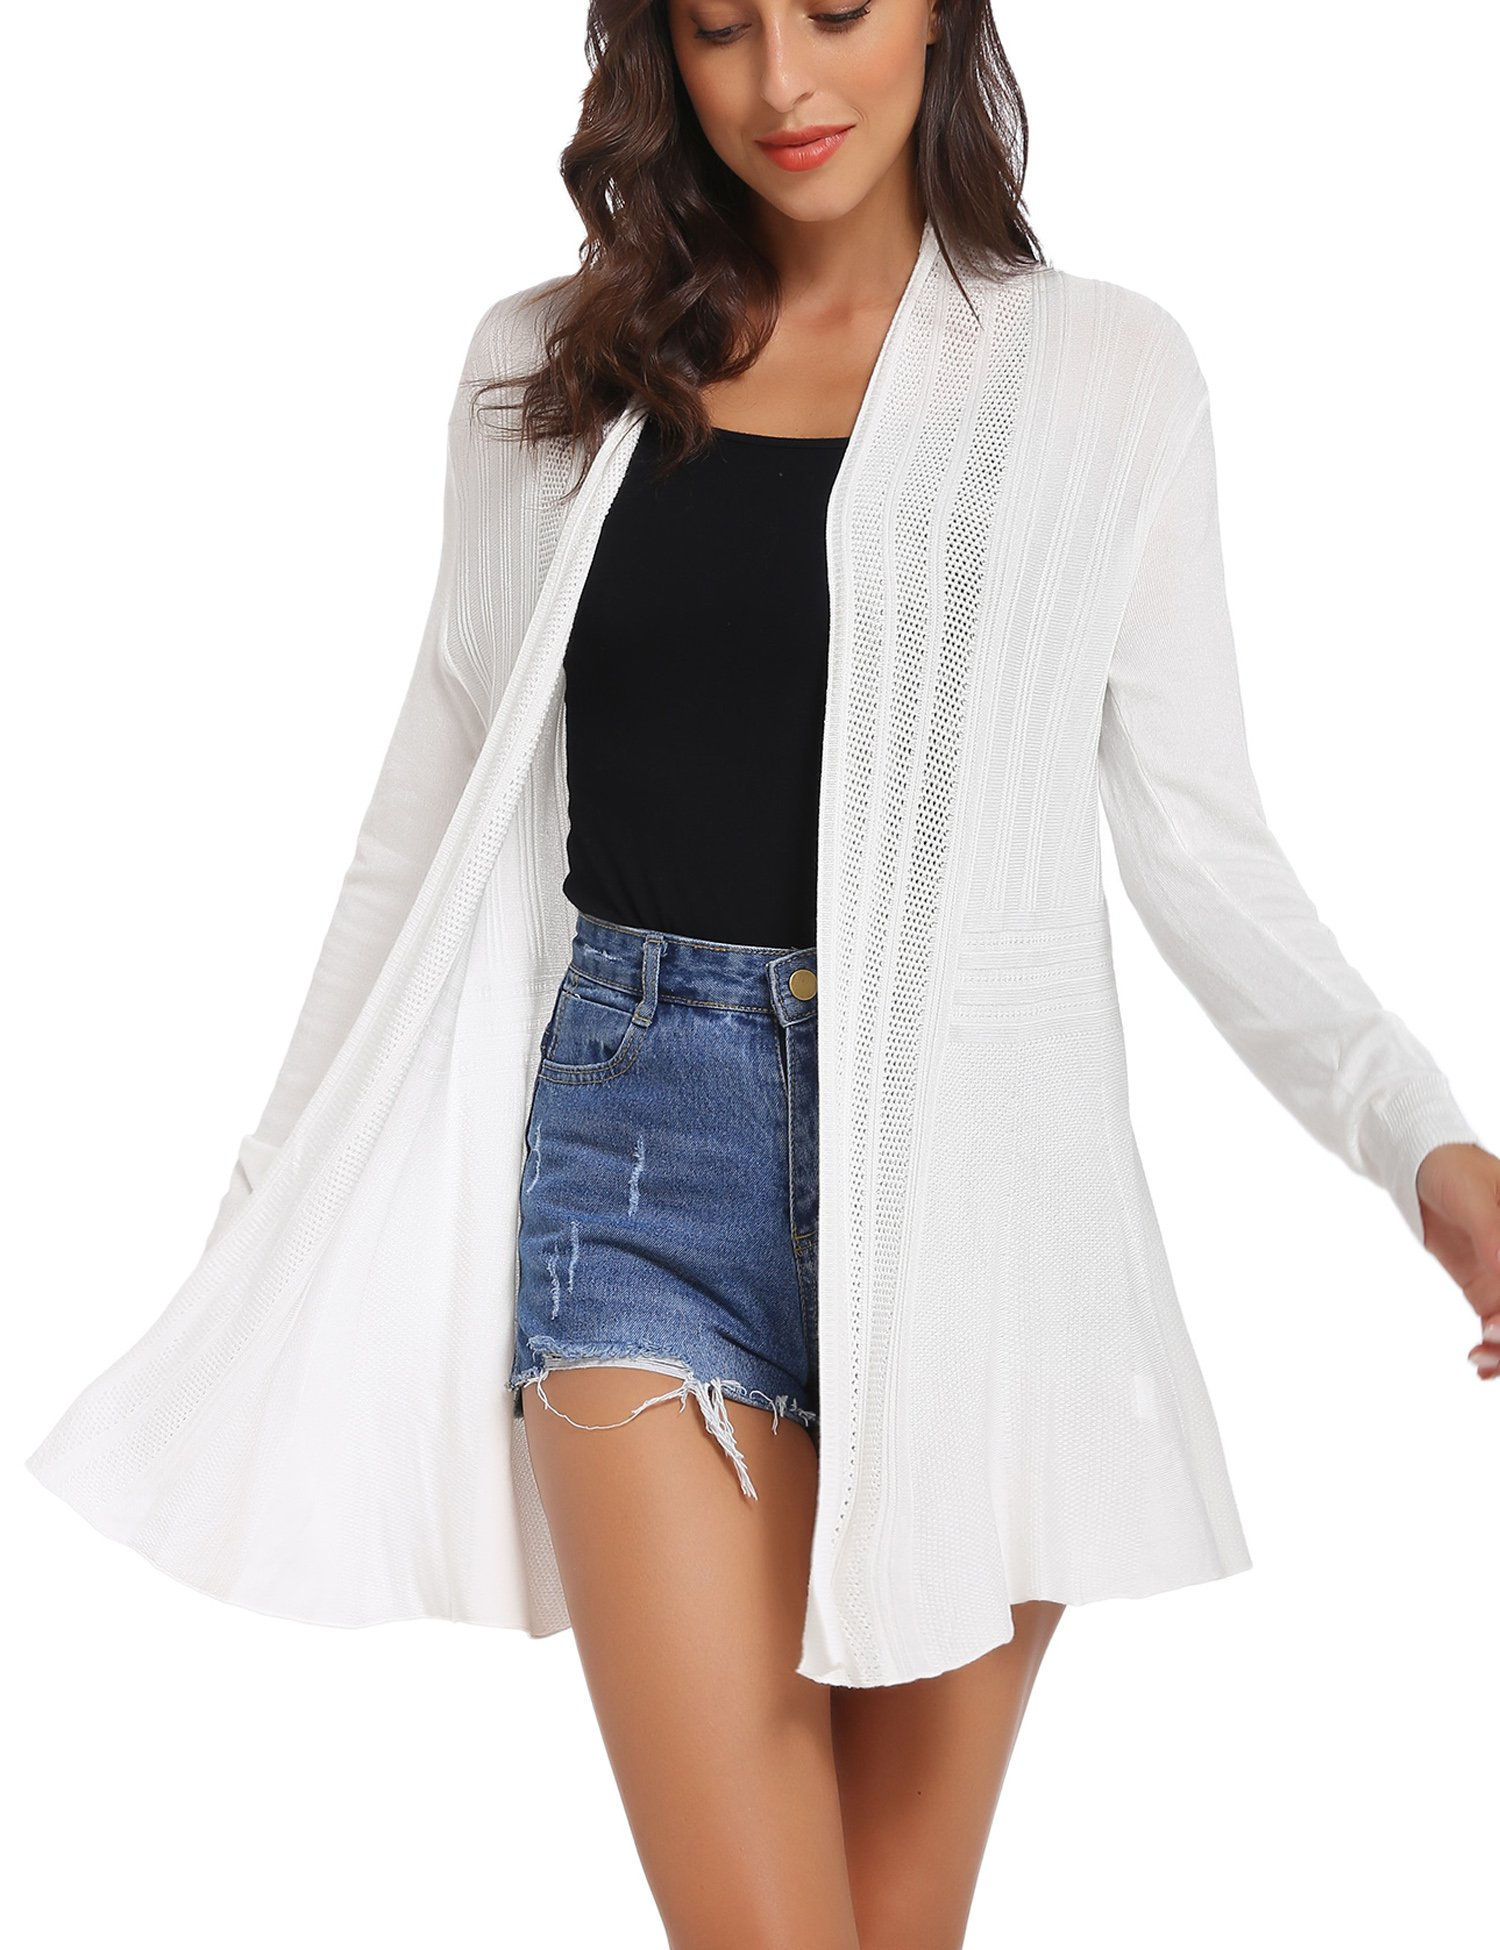 iClosam Womens Casual Long Sleeve Open Front Cardigan Sweater